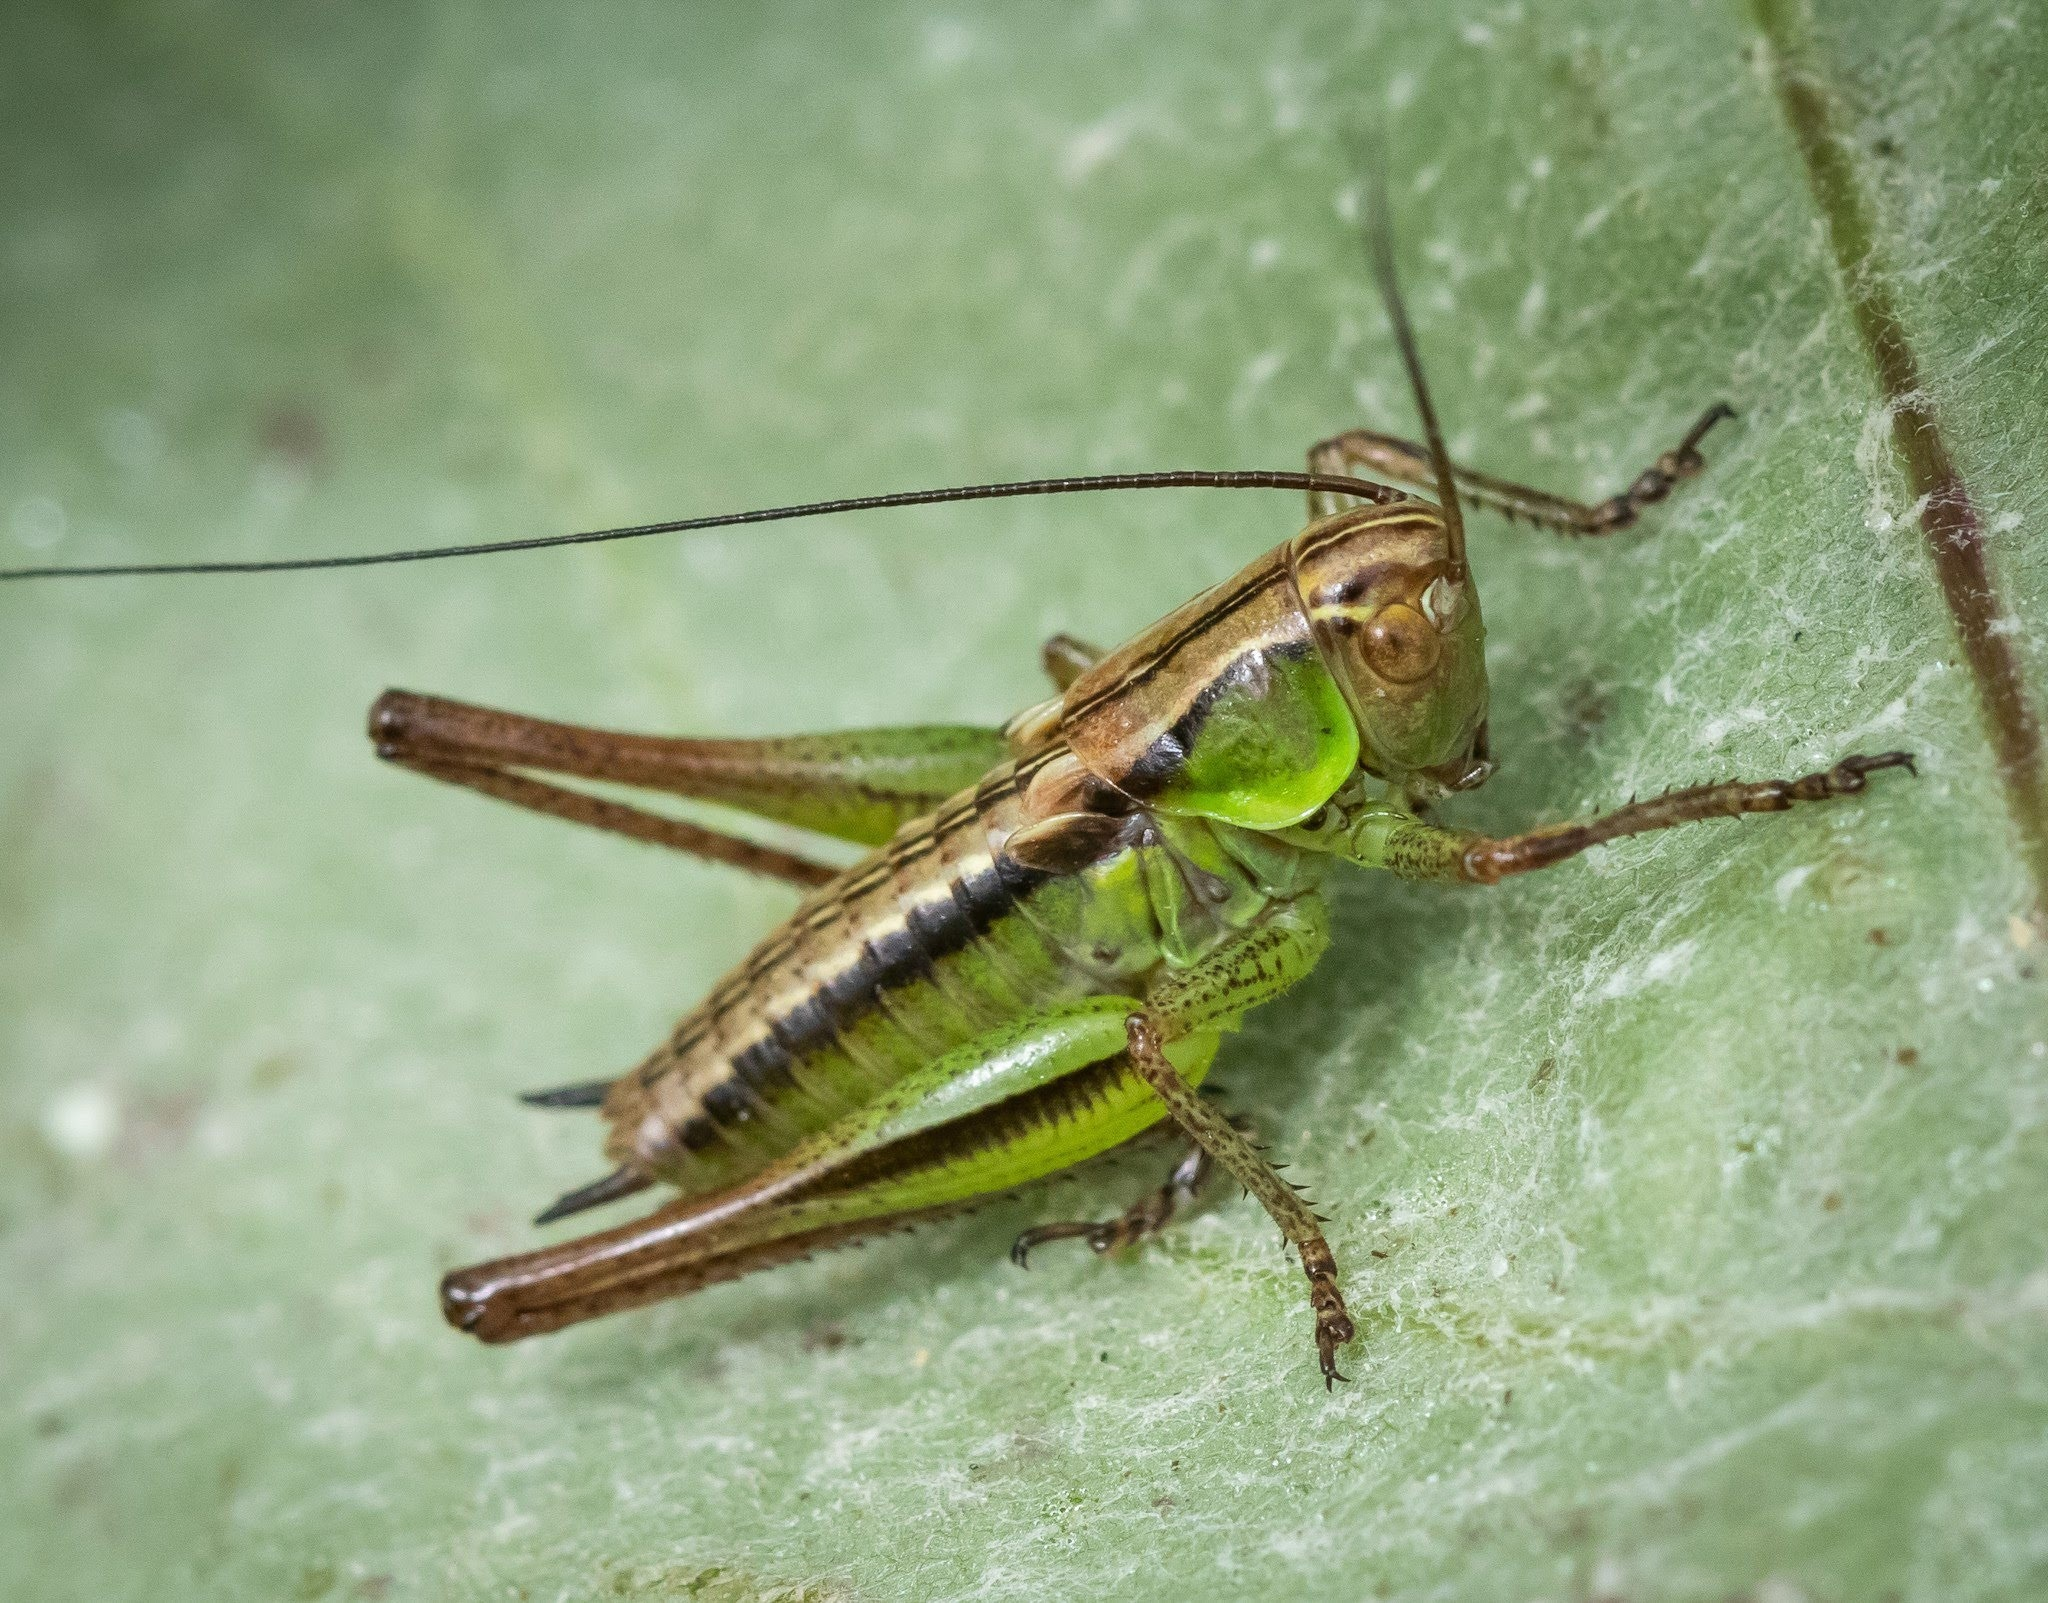 Roasel's bush - cricket by Janne Karppinen